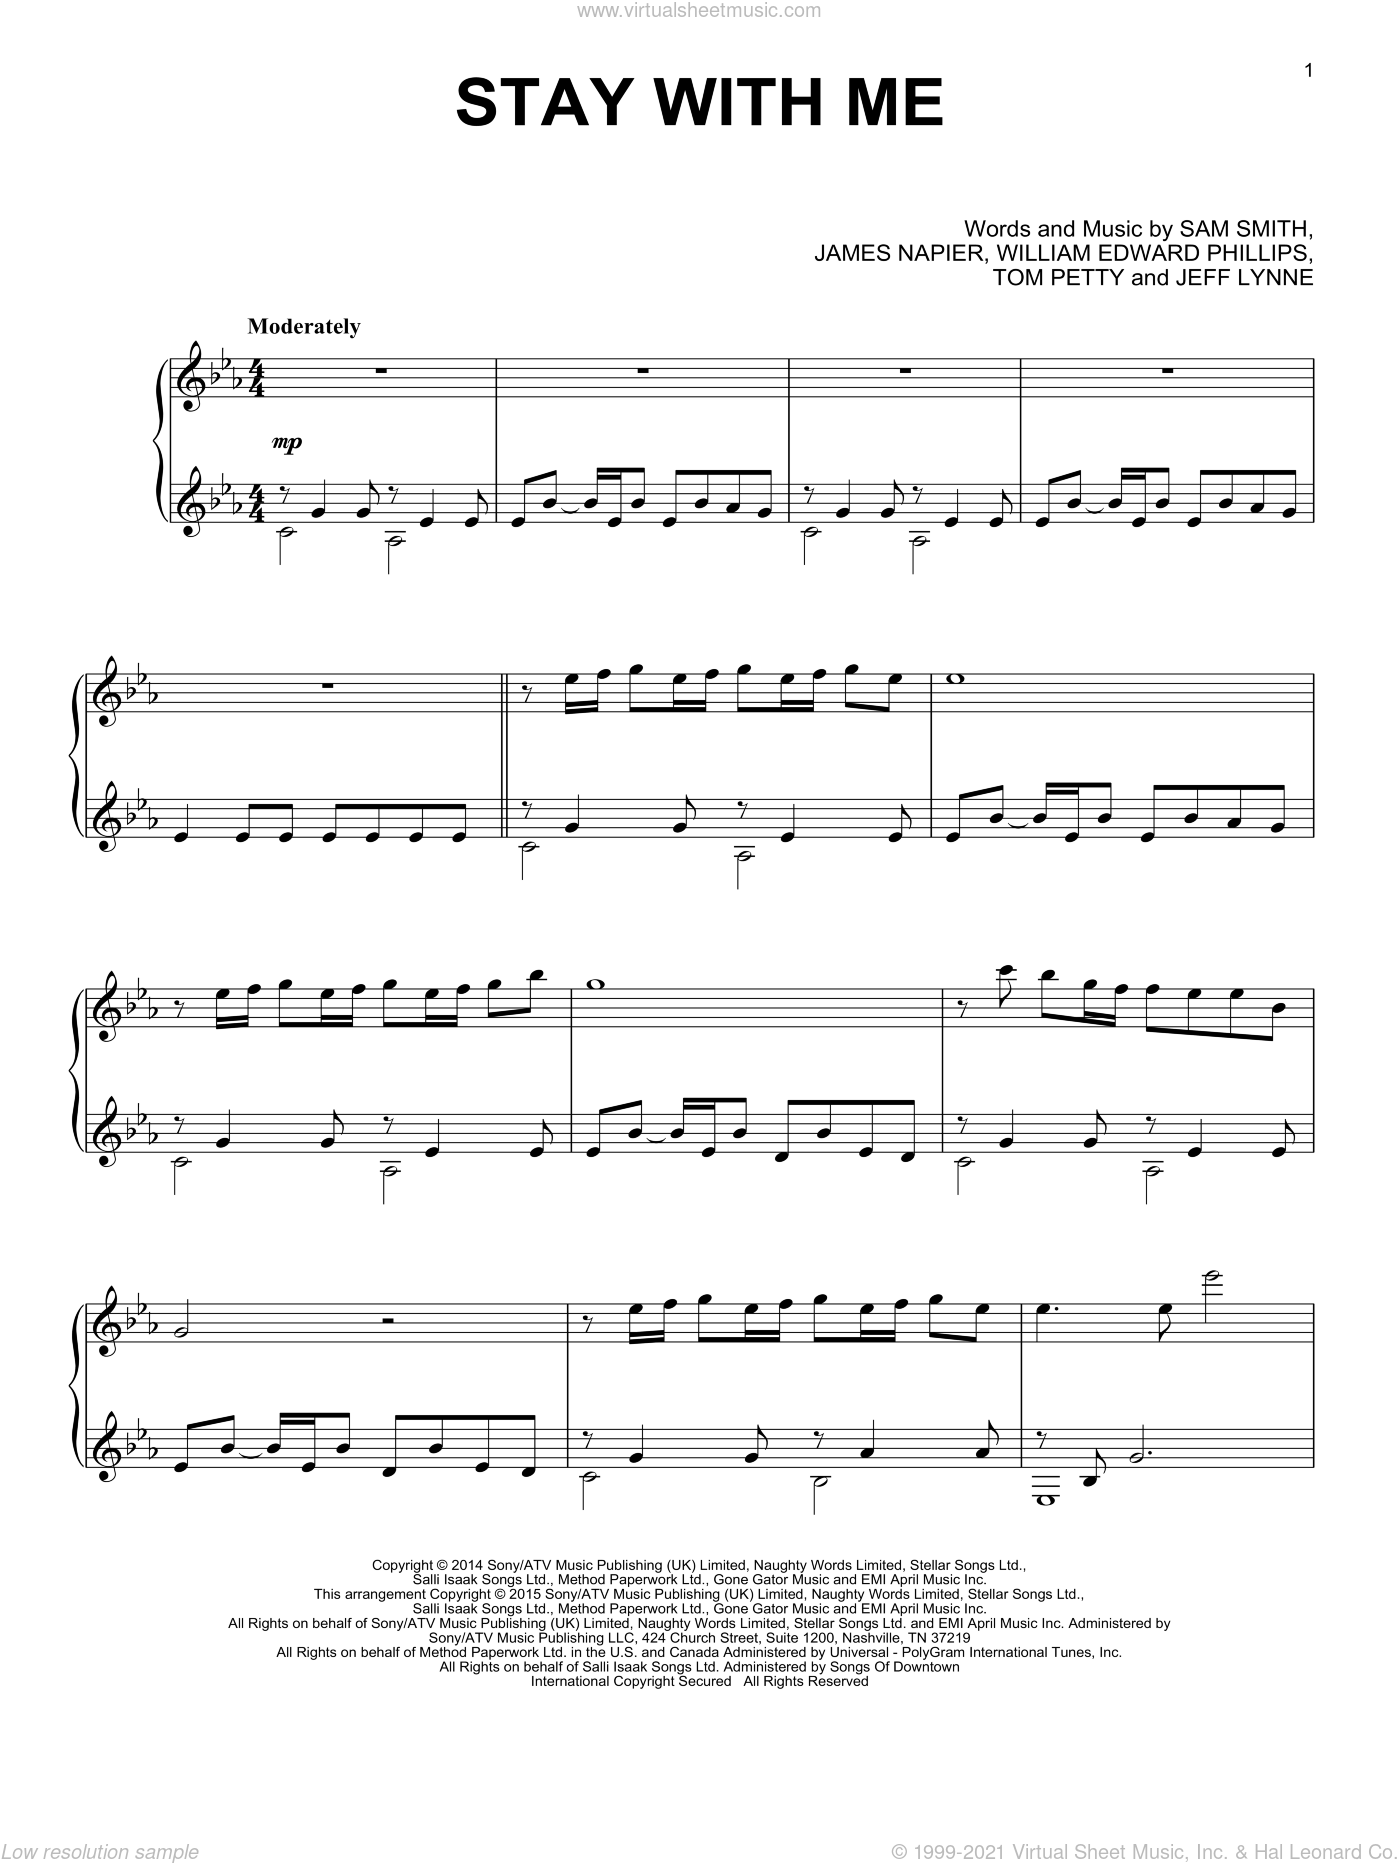 Stay With Me sheet music for piano solo by Sam Smith, James Napier, Jeff Lynne, Tom Petty and William Edward Phillips, intermediate skill level